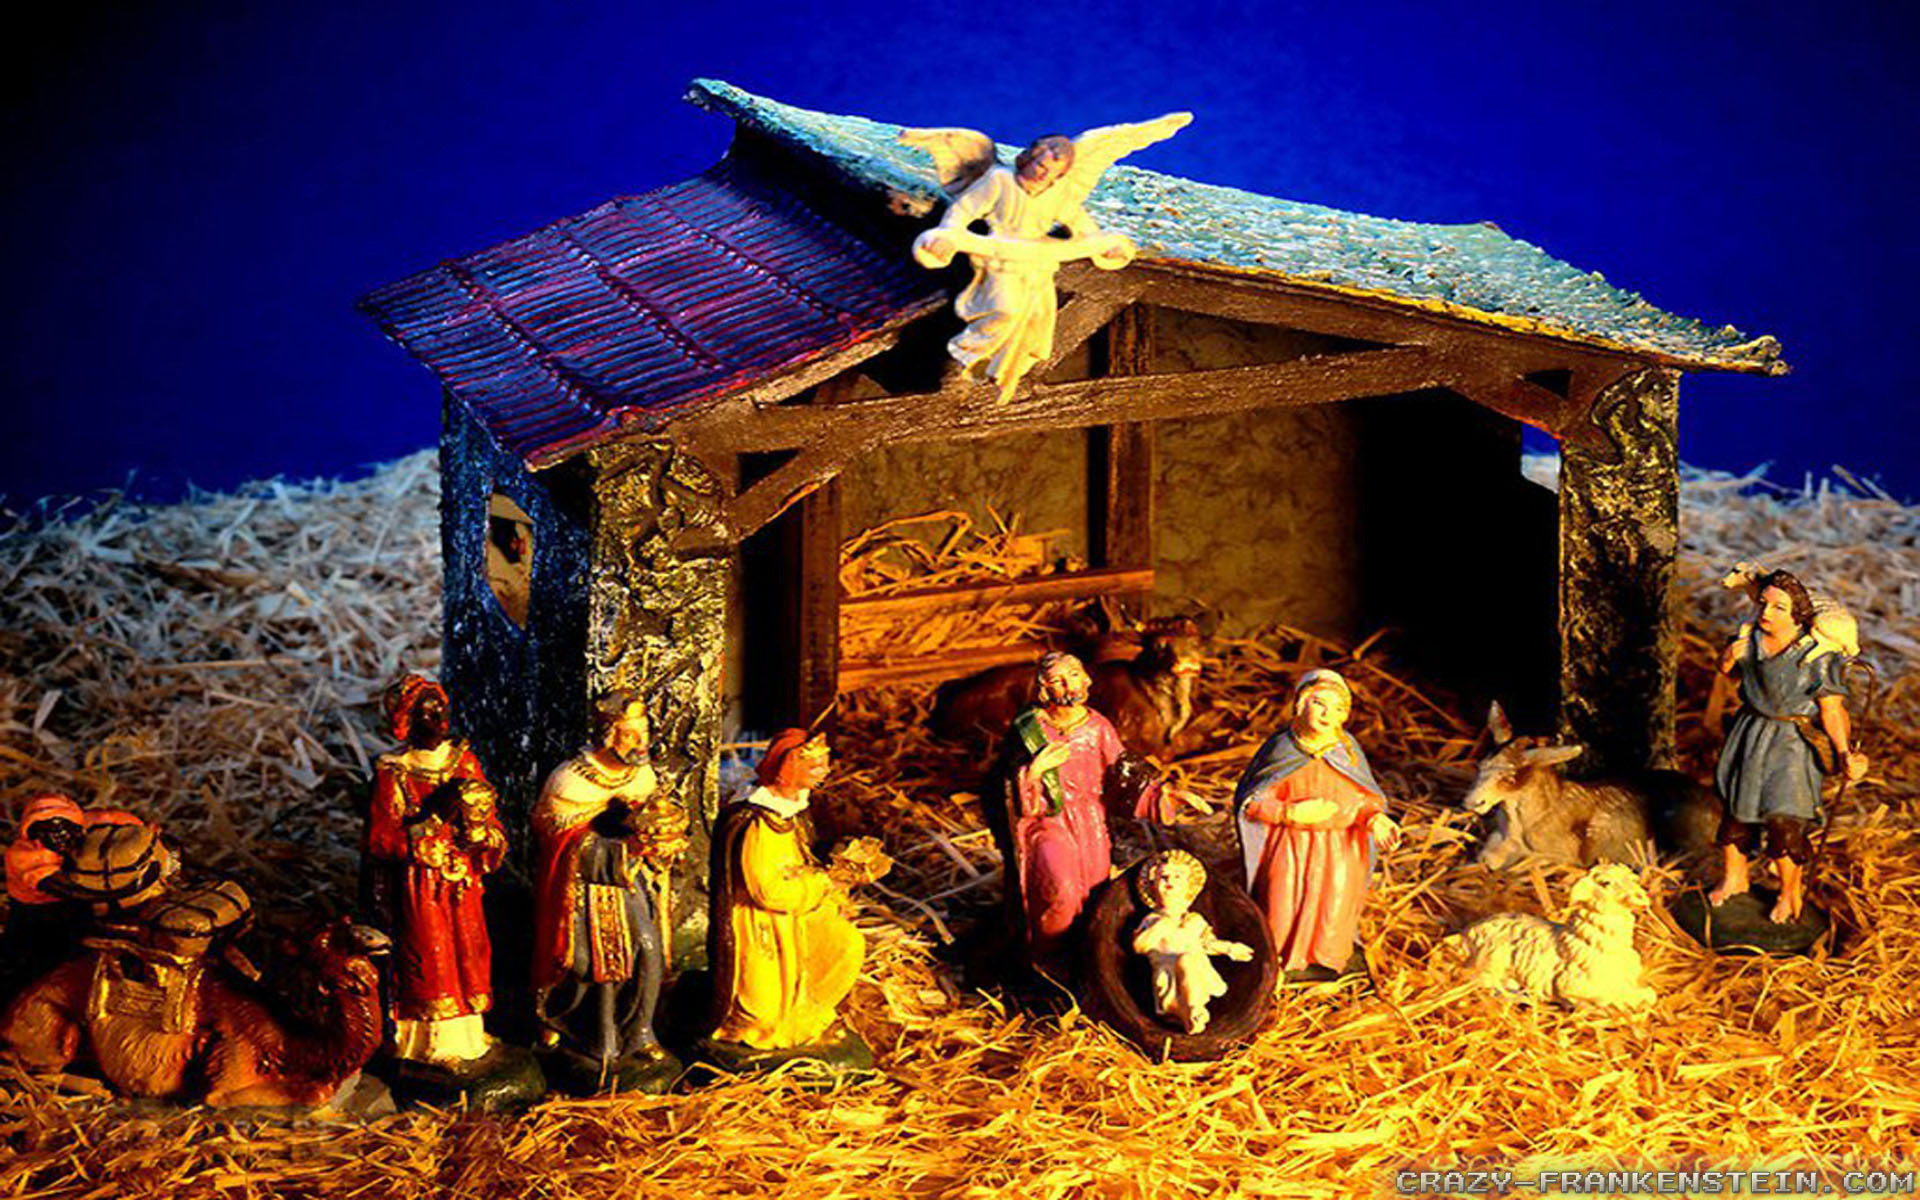 Videos · Home > Wallpapers > Holiday wallpapers > Christmas wallpapers · christmas  nativity wallpapers